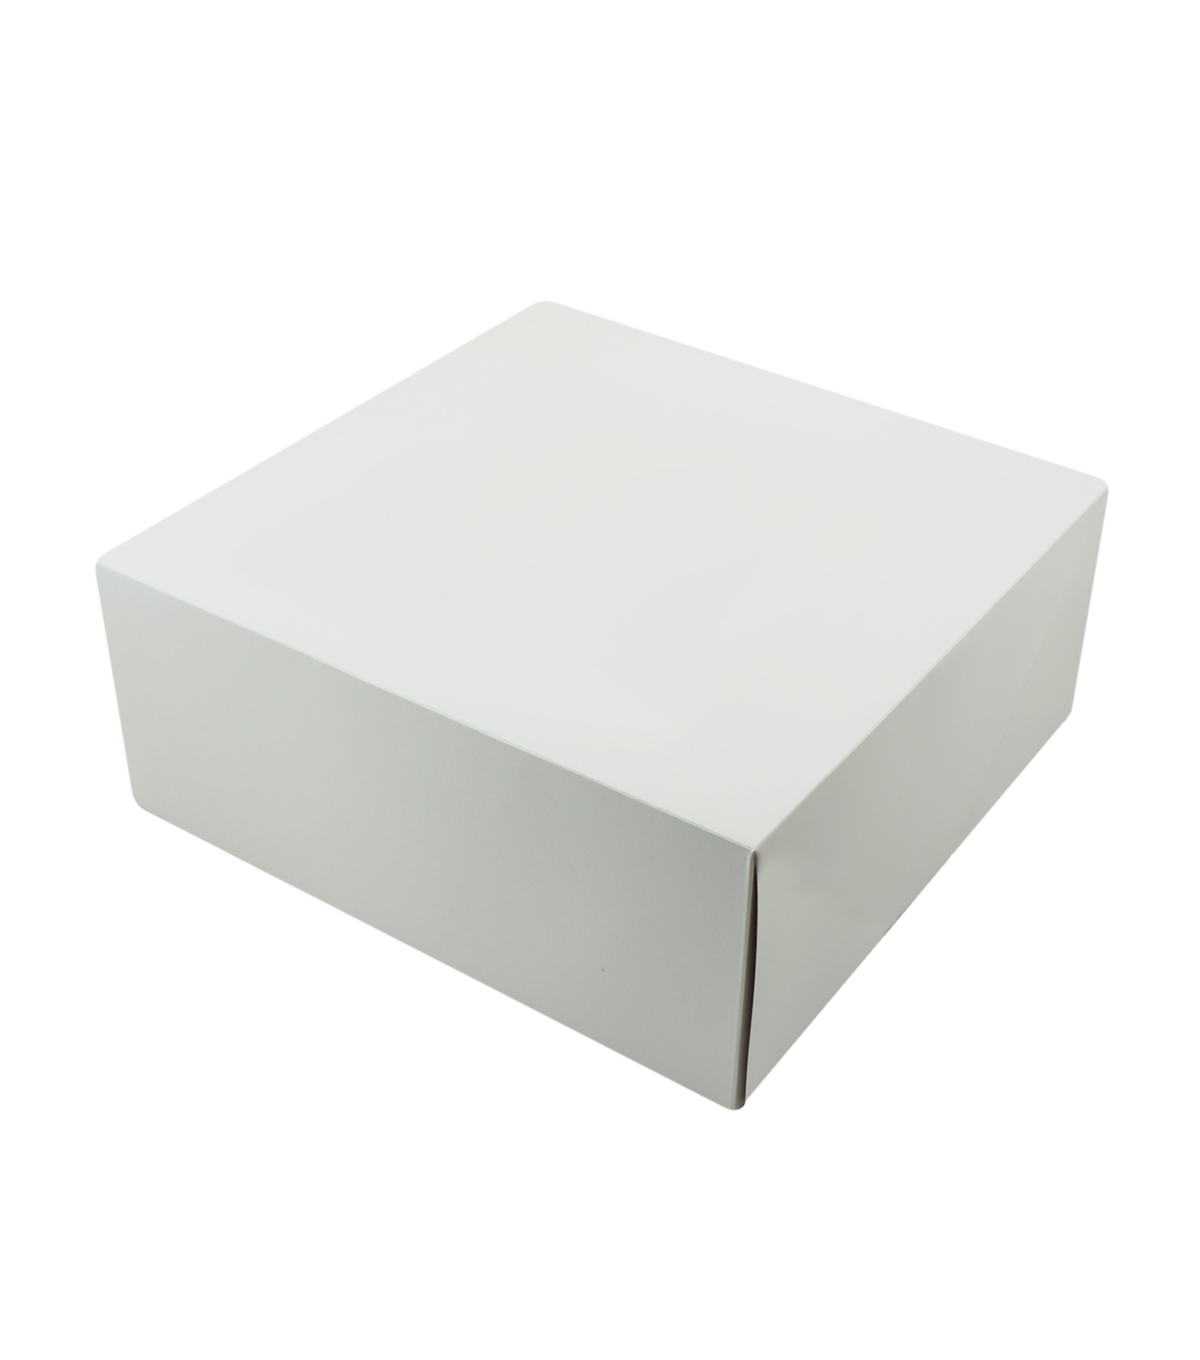 "Corrugated Cake Box 14.25""X14.25""X6"" 2/Pkg"